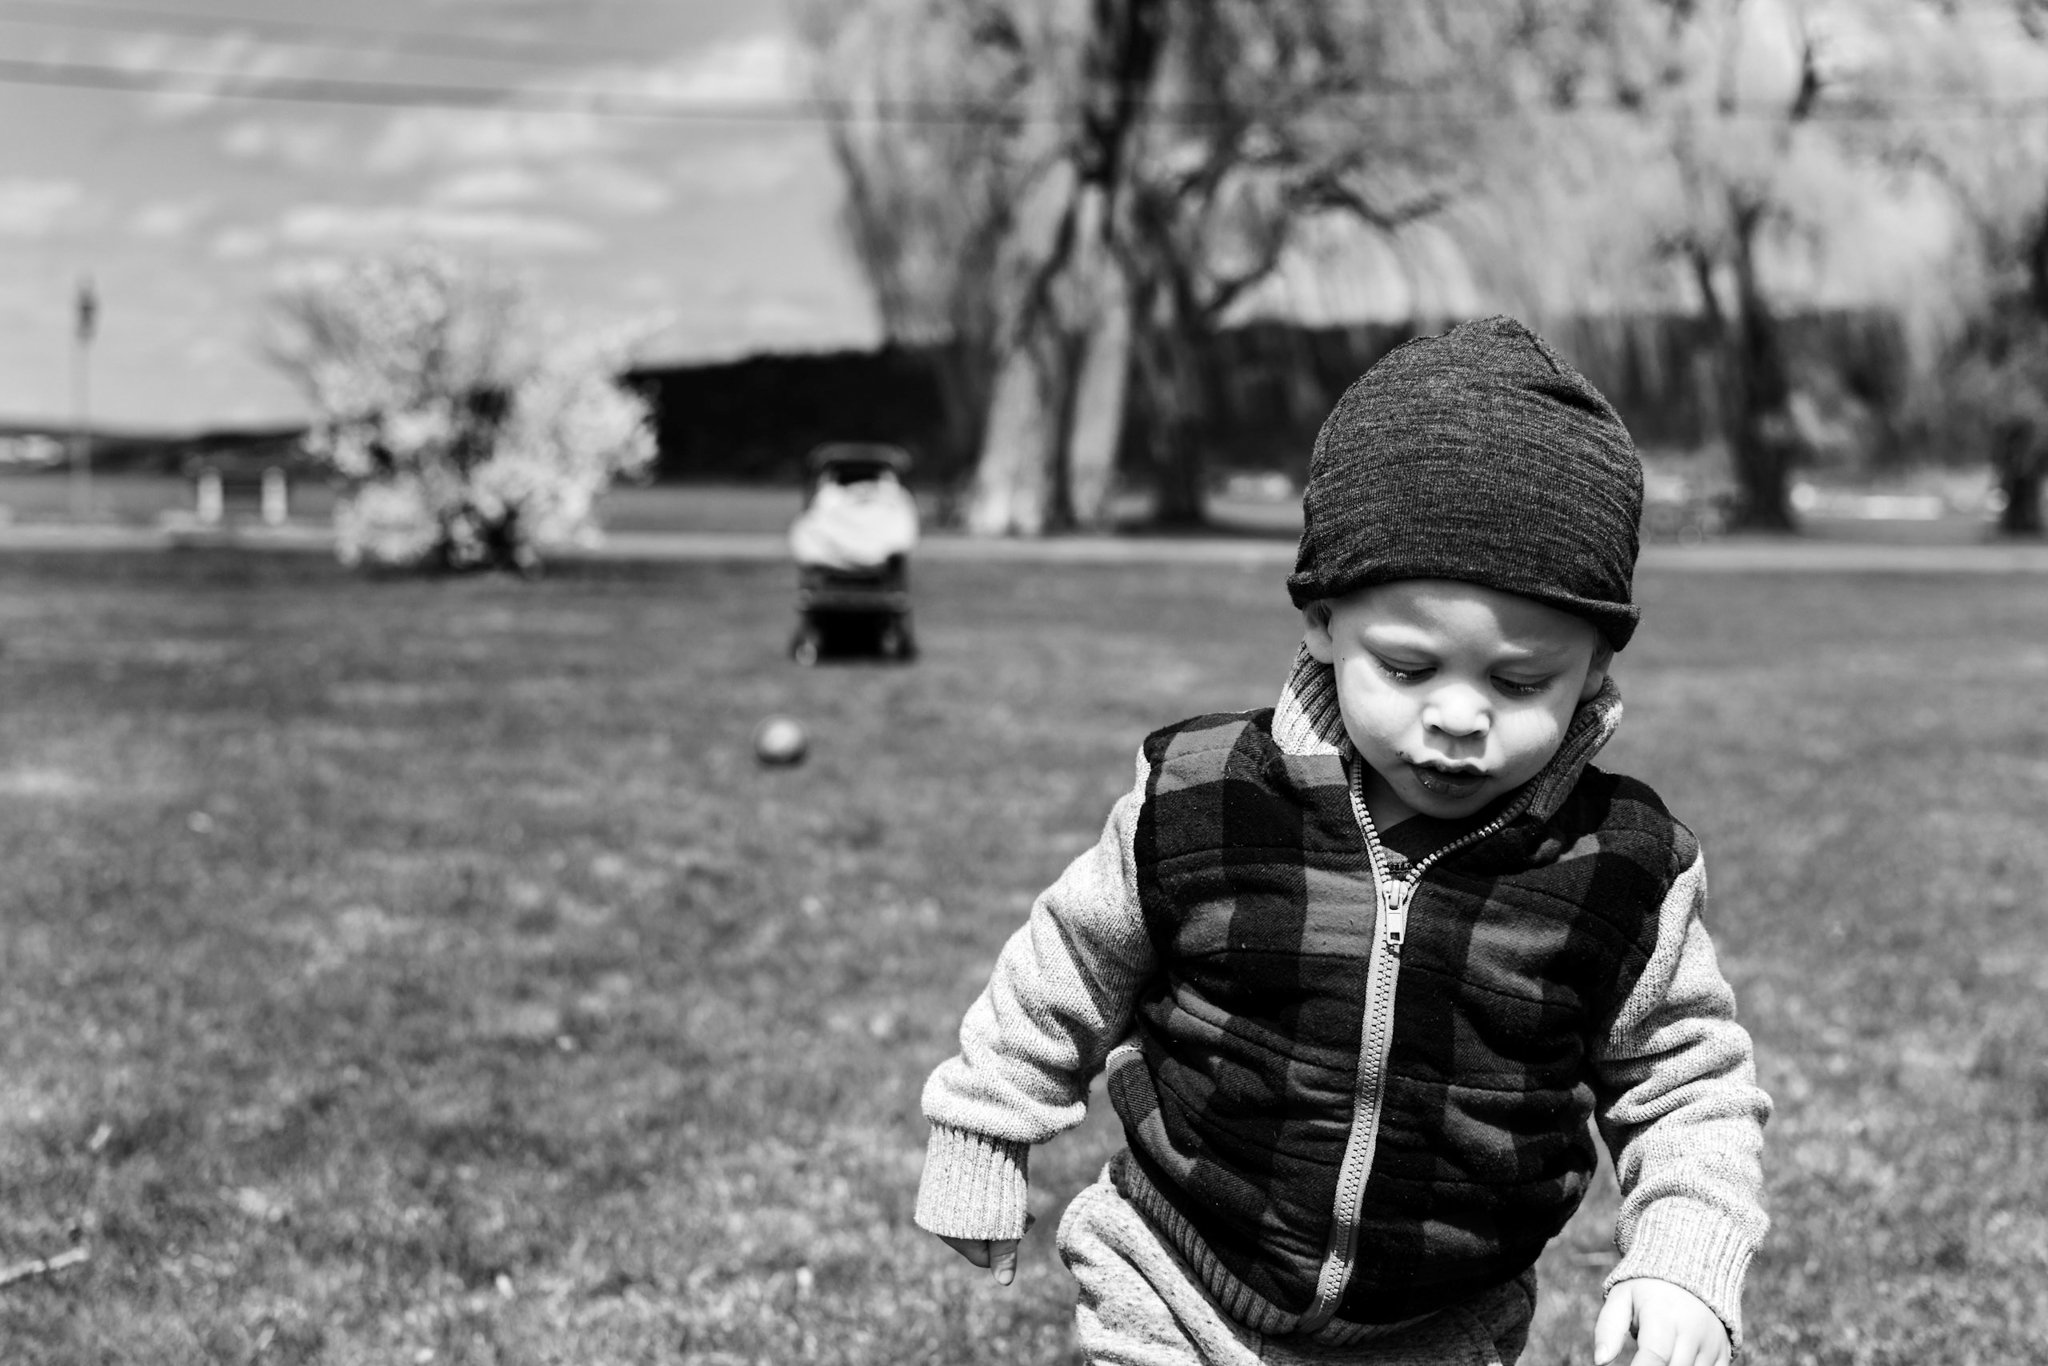 shows monochrome photo of my son